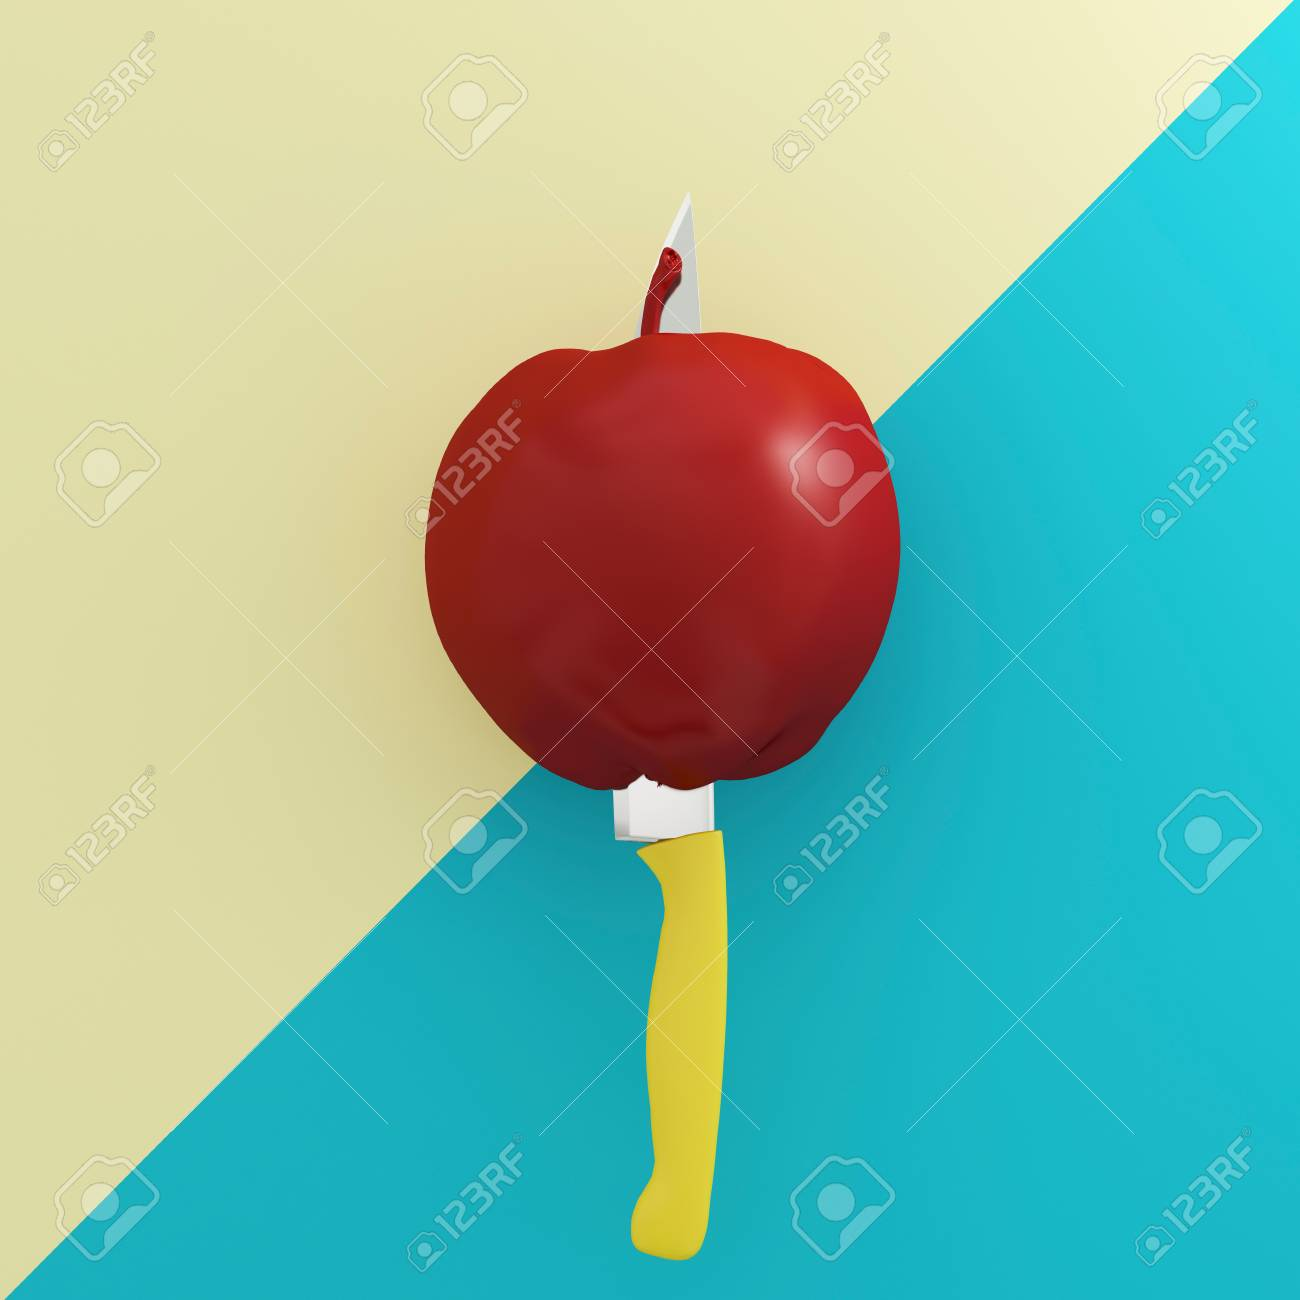 Creative Concept : Red Apple Impaled On Stainless Kitchen Knives ...